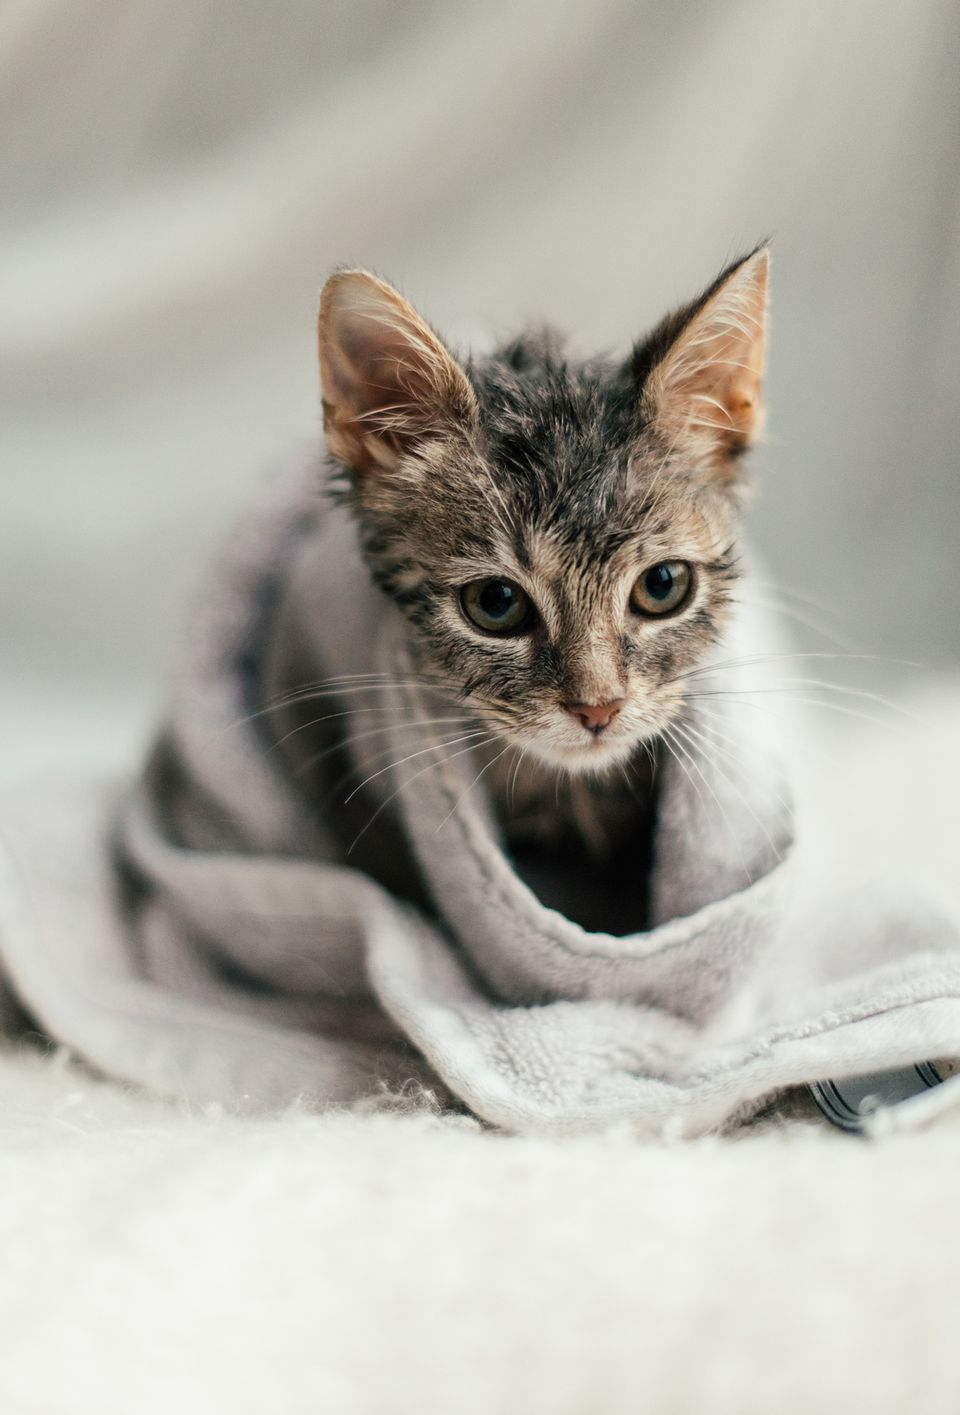 kitten wrapped in a towel after a bath